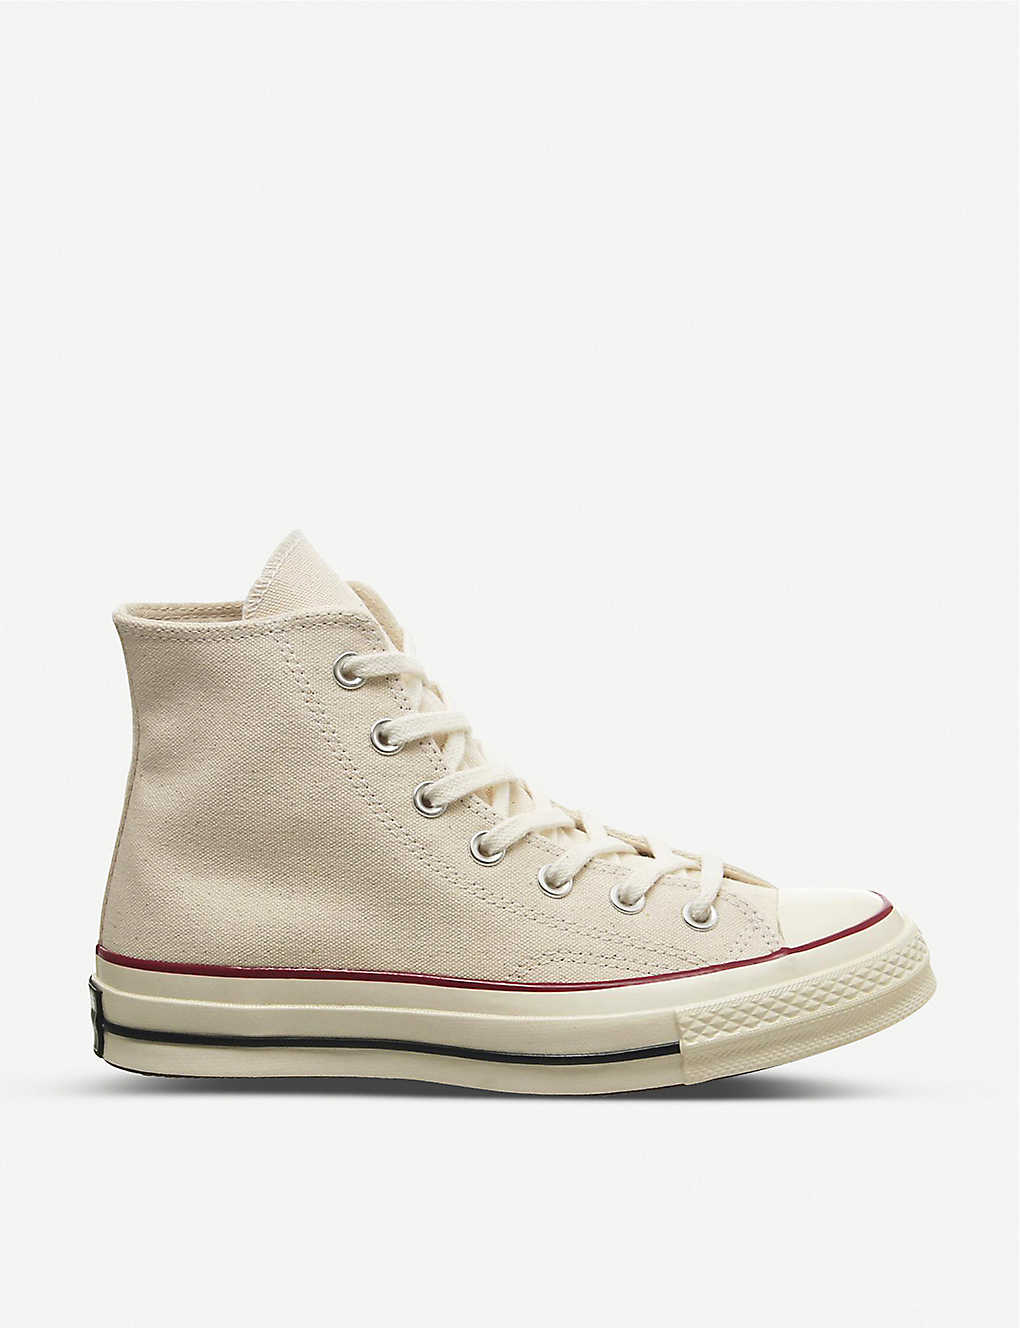 7ffd92401c69 Chuck Taylor All Star 70s Hi trainers - Parchment ...